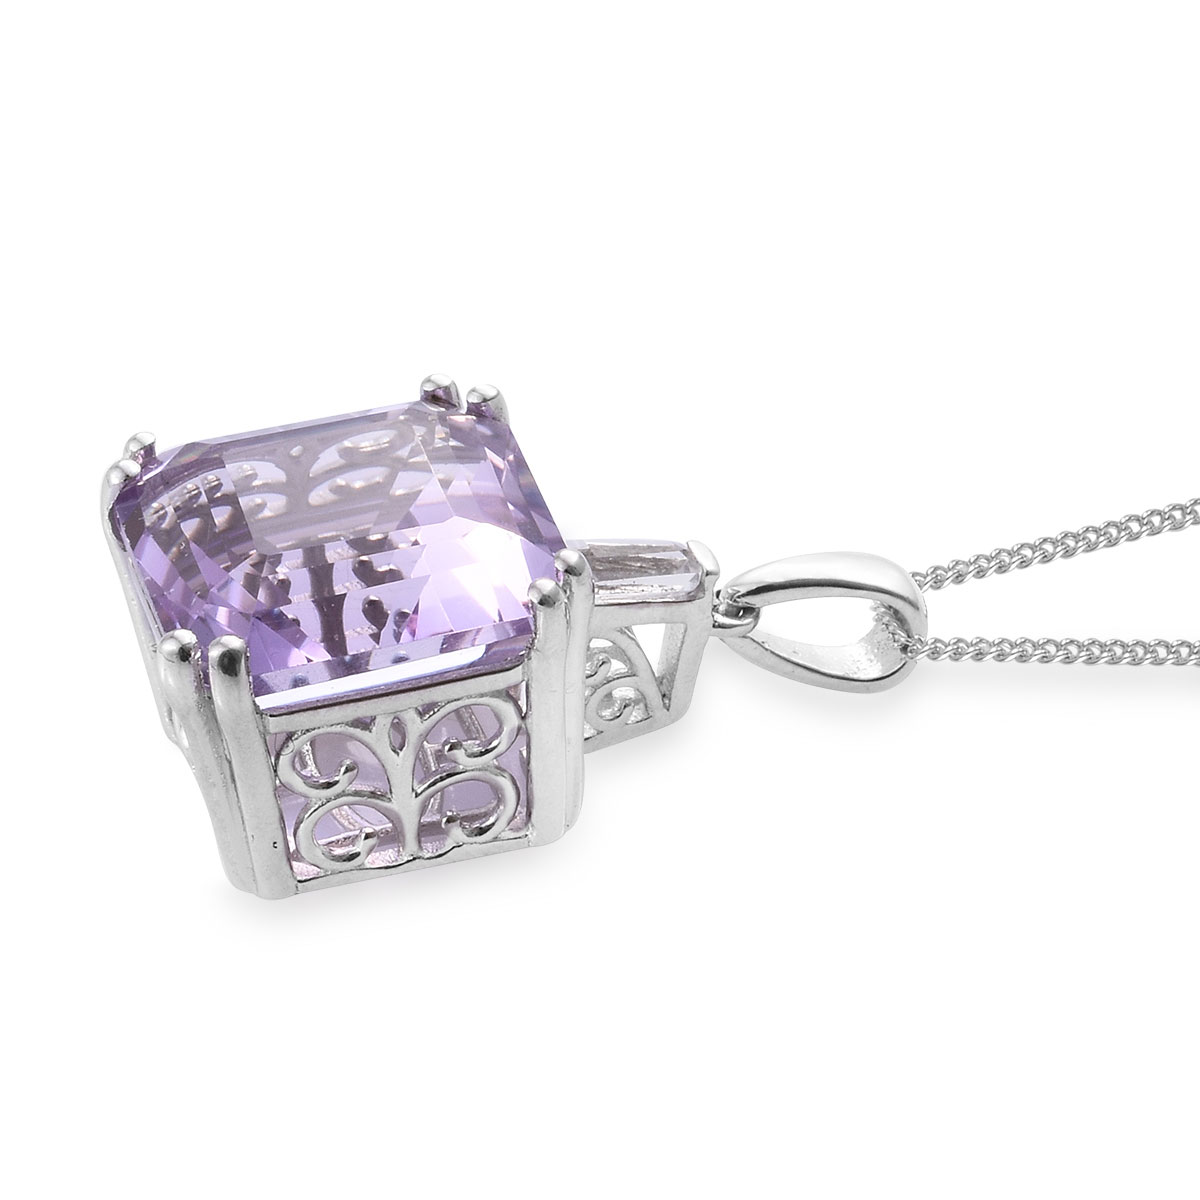 Asscher Cut Rose De France Amethyst, White Topaz Pendant Necklace (20 in) in Platinum Over Sterling Silver 12.25 ctw